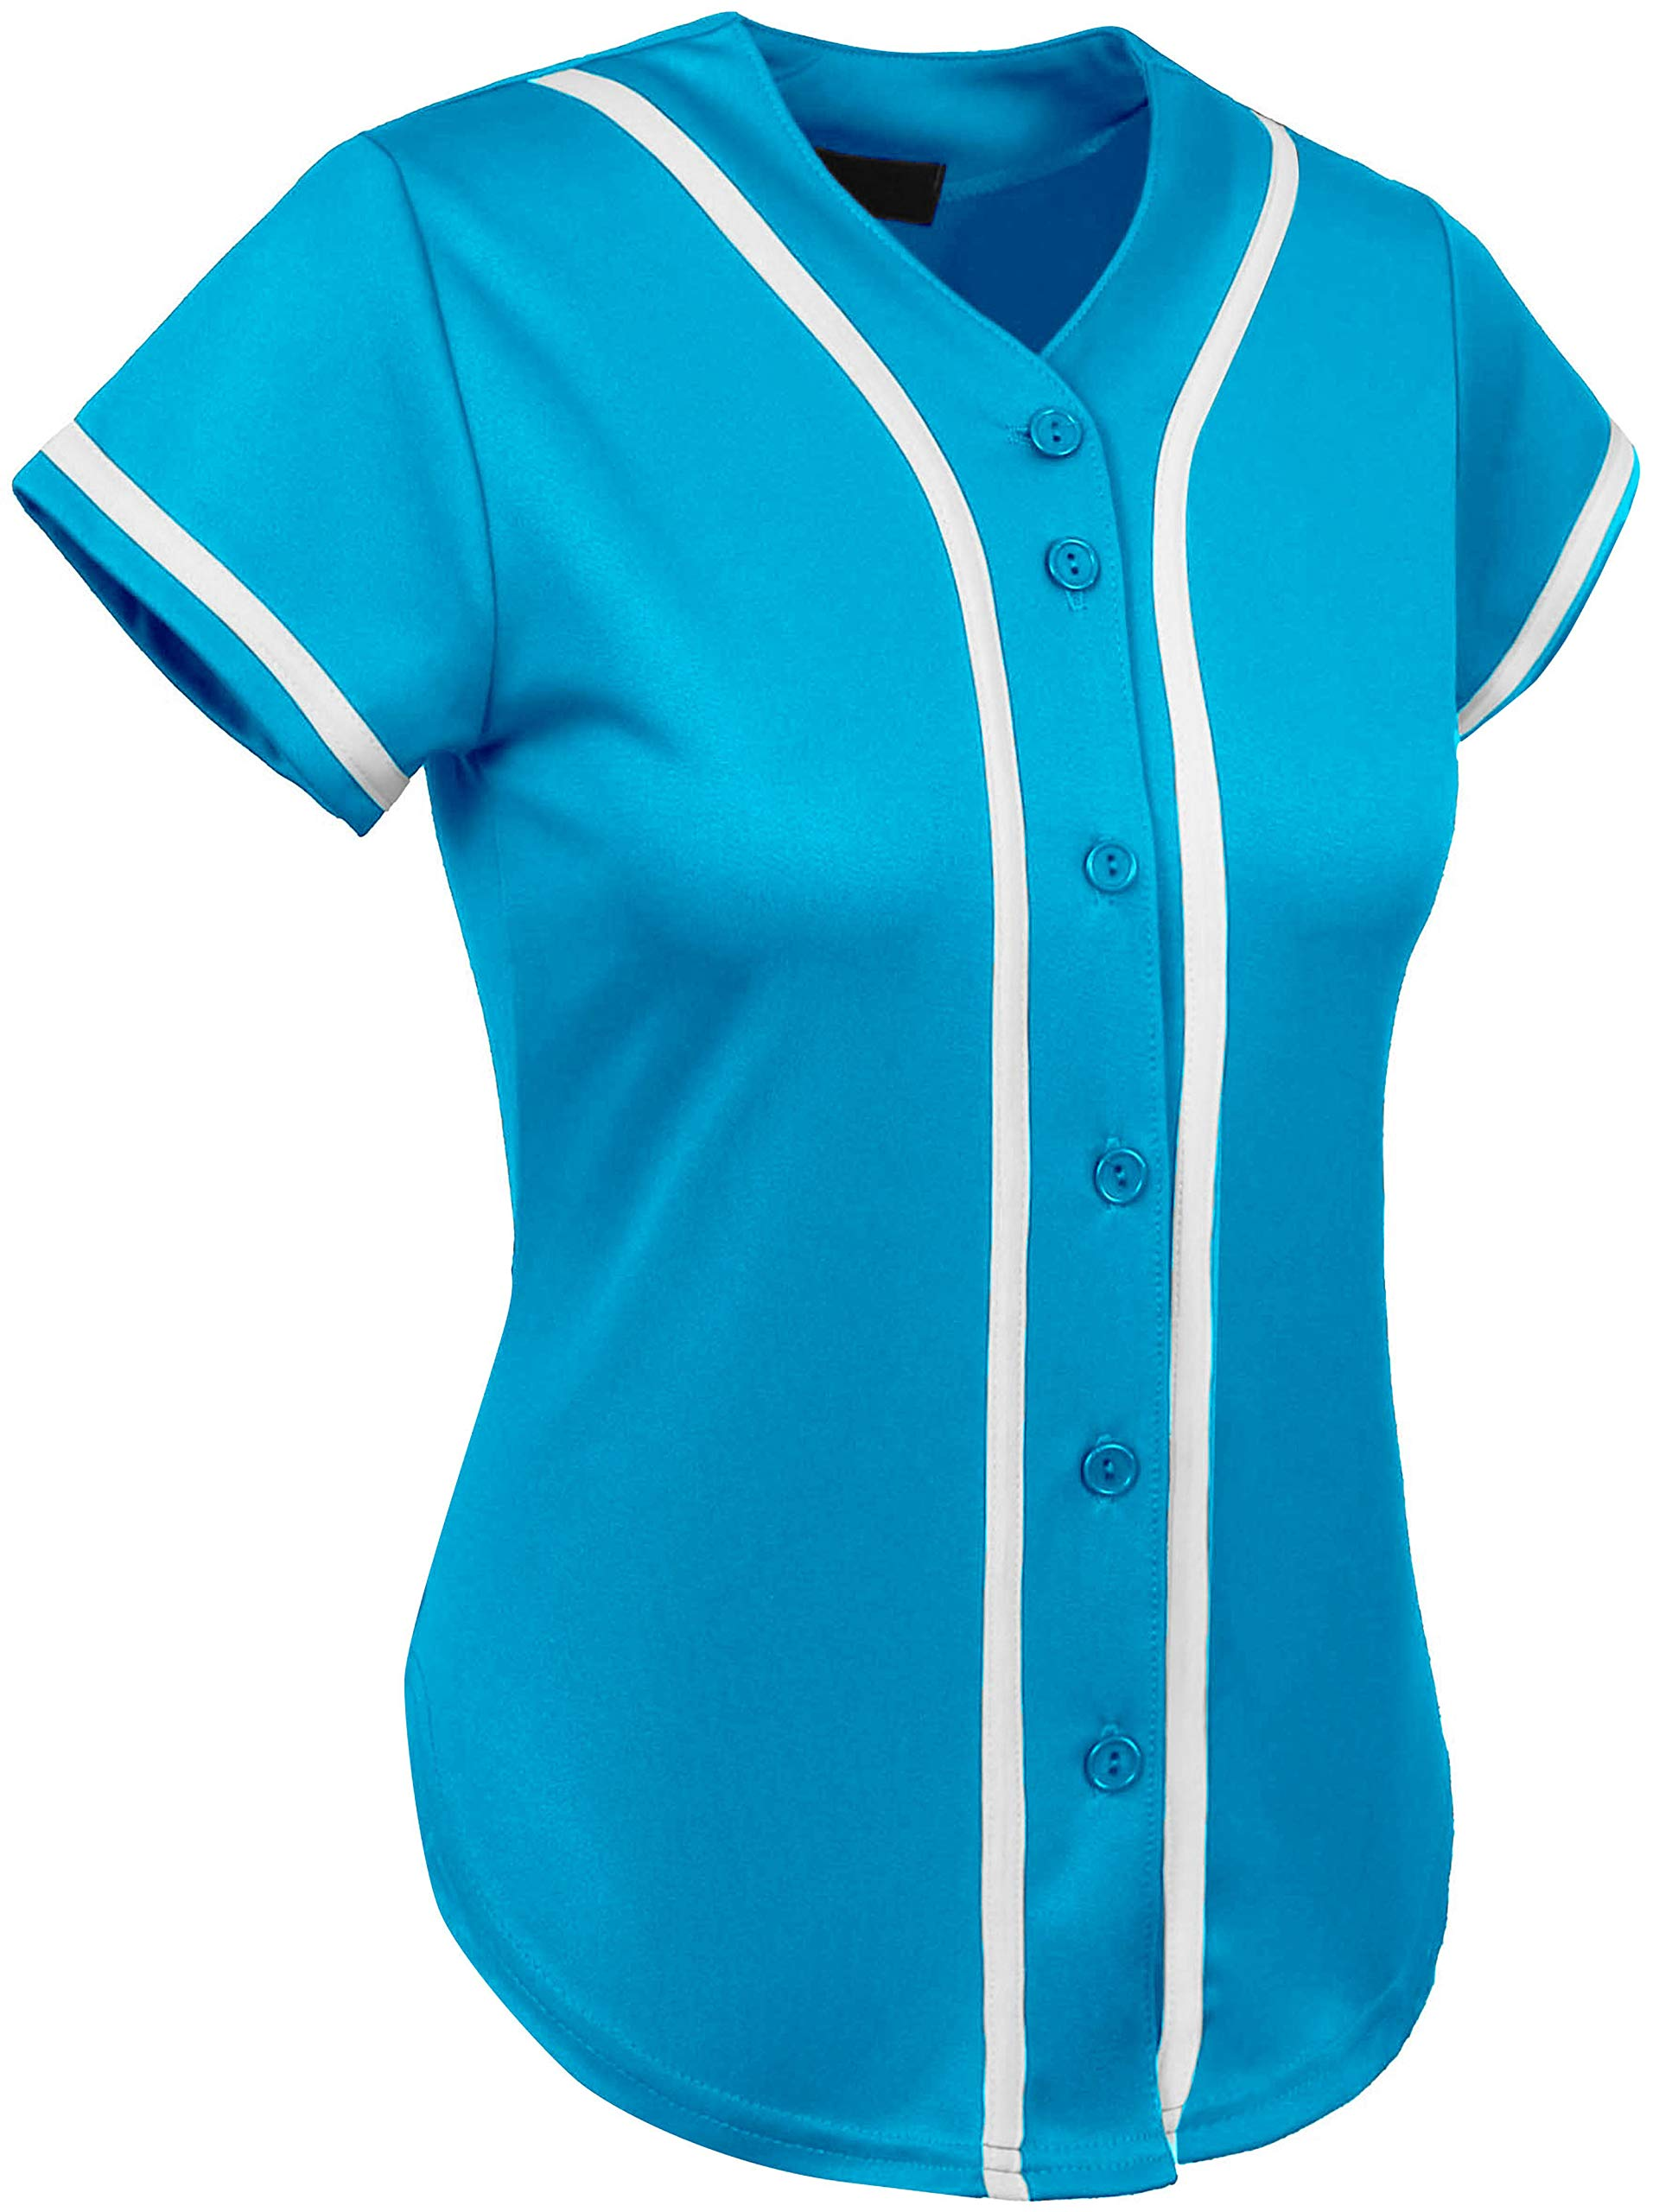 Ma Croix Womens Premium Baseball Jersey Active Button Shirt Team Uniform (2X-Large, 3up01_Turquoise/White) by Ma Croix